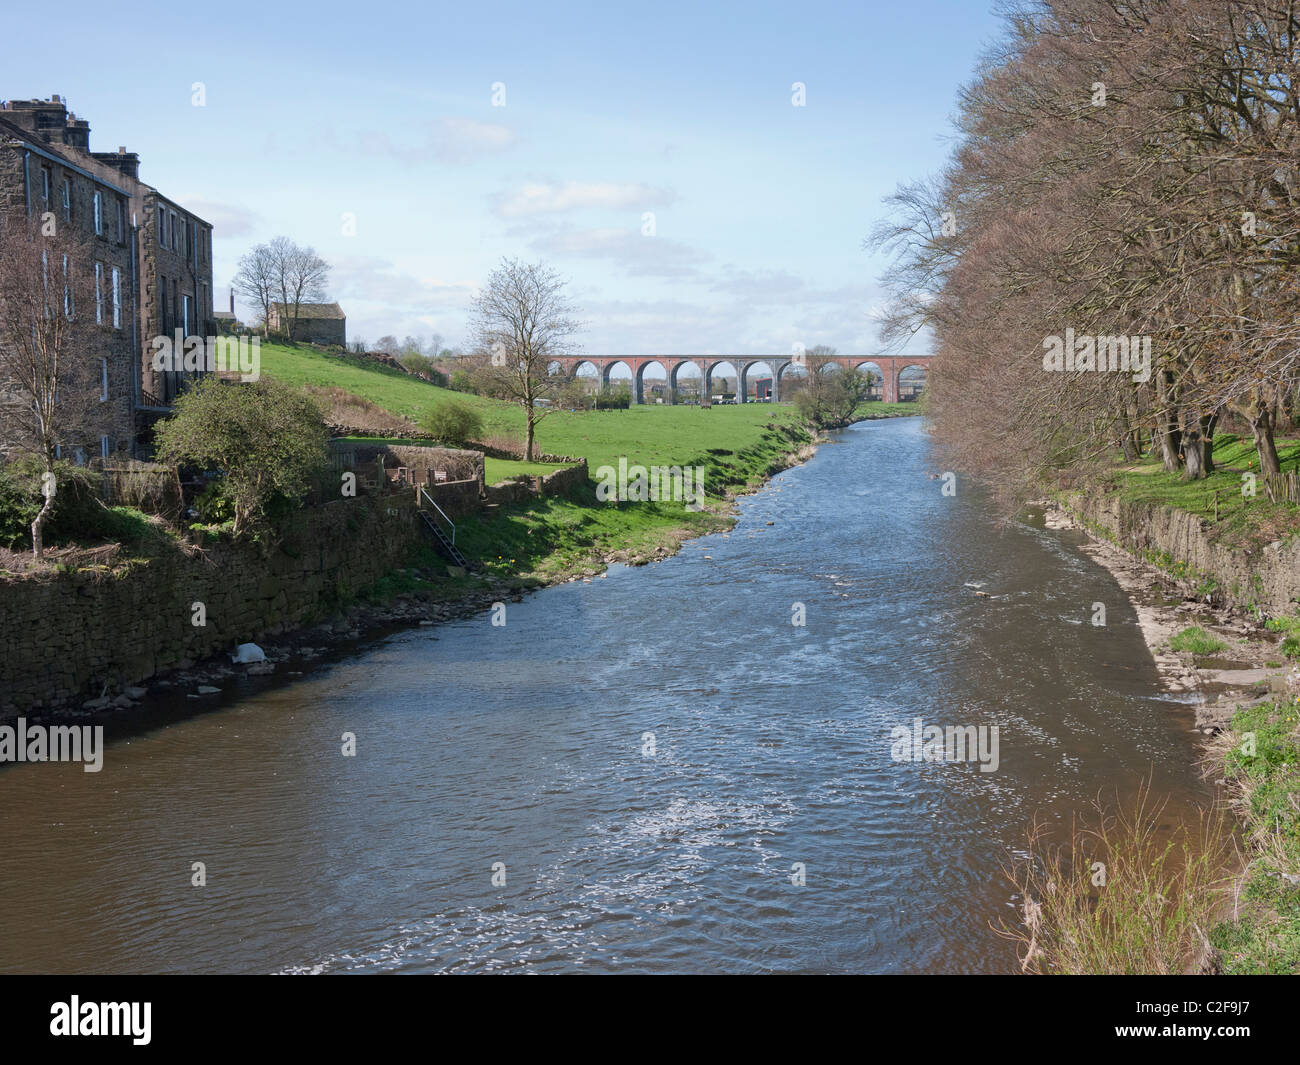 River Calder and Whalley Arches (viaduct) at Whalley, Clitheroe, Lancashire, England, UK. - Stock Image